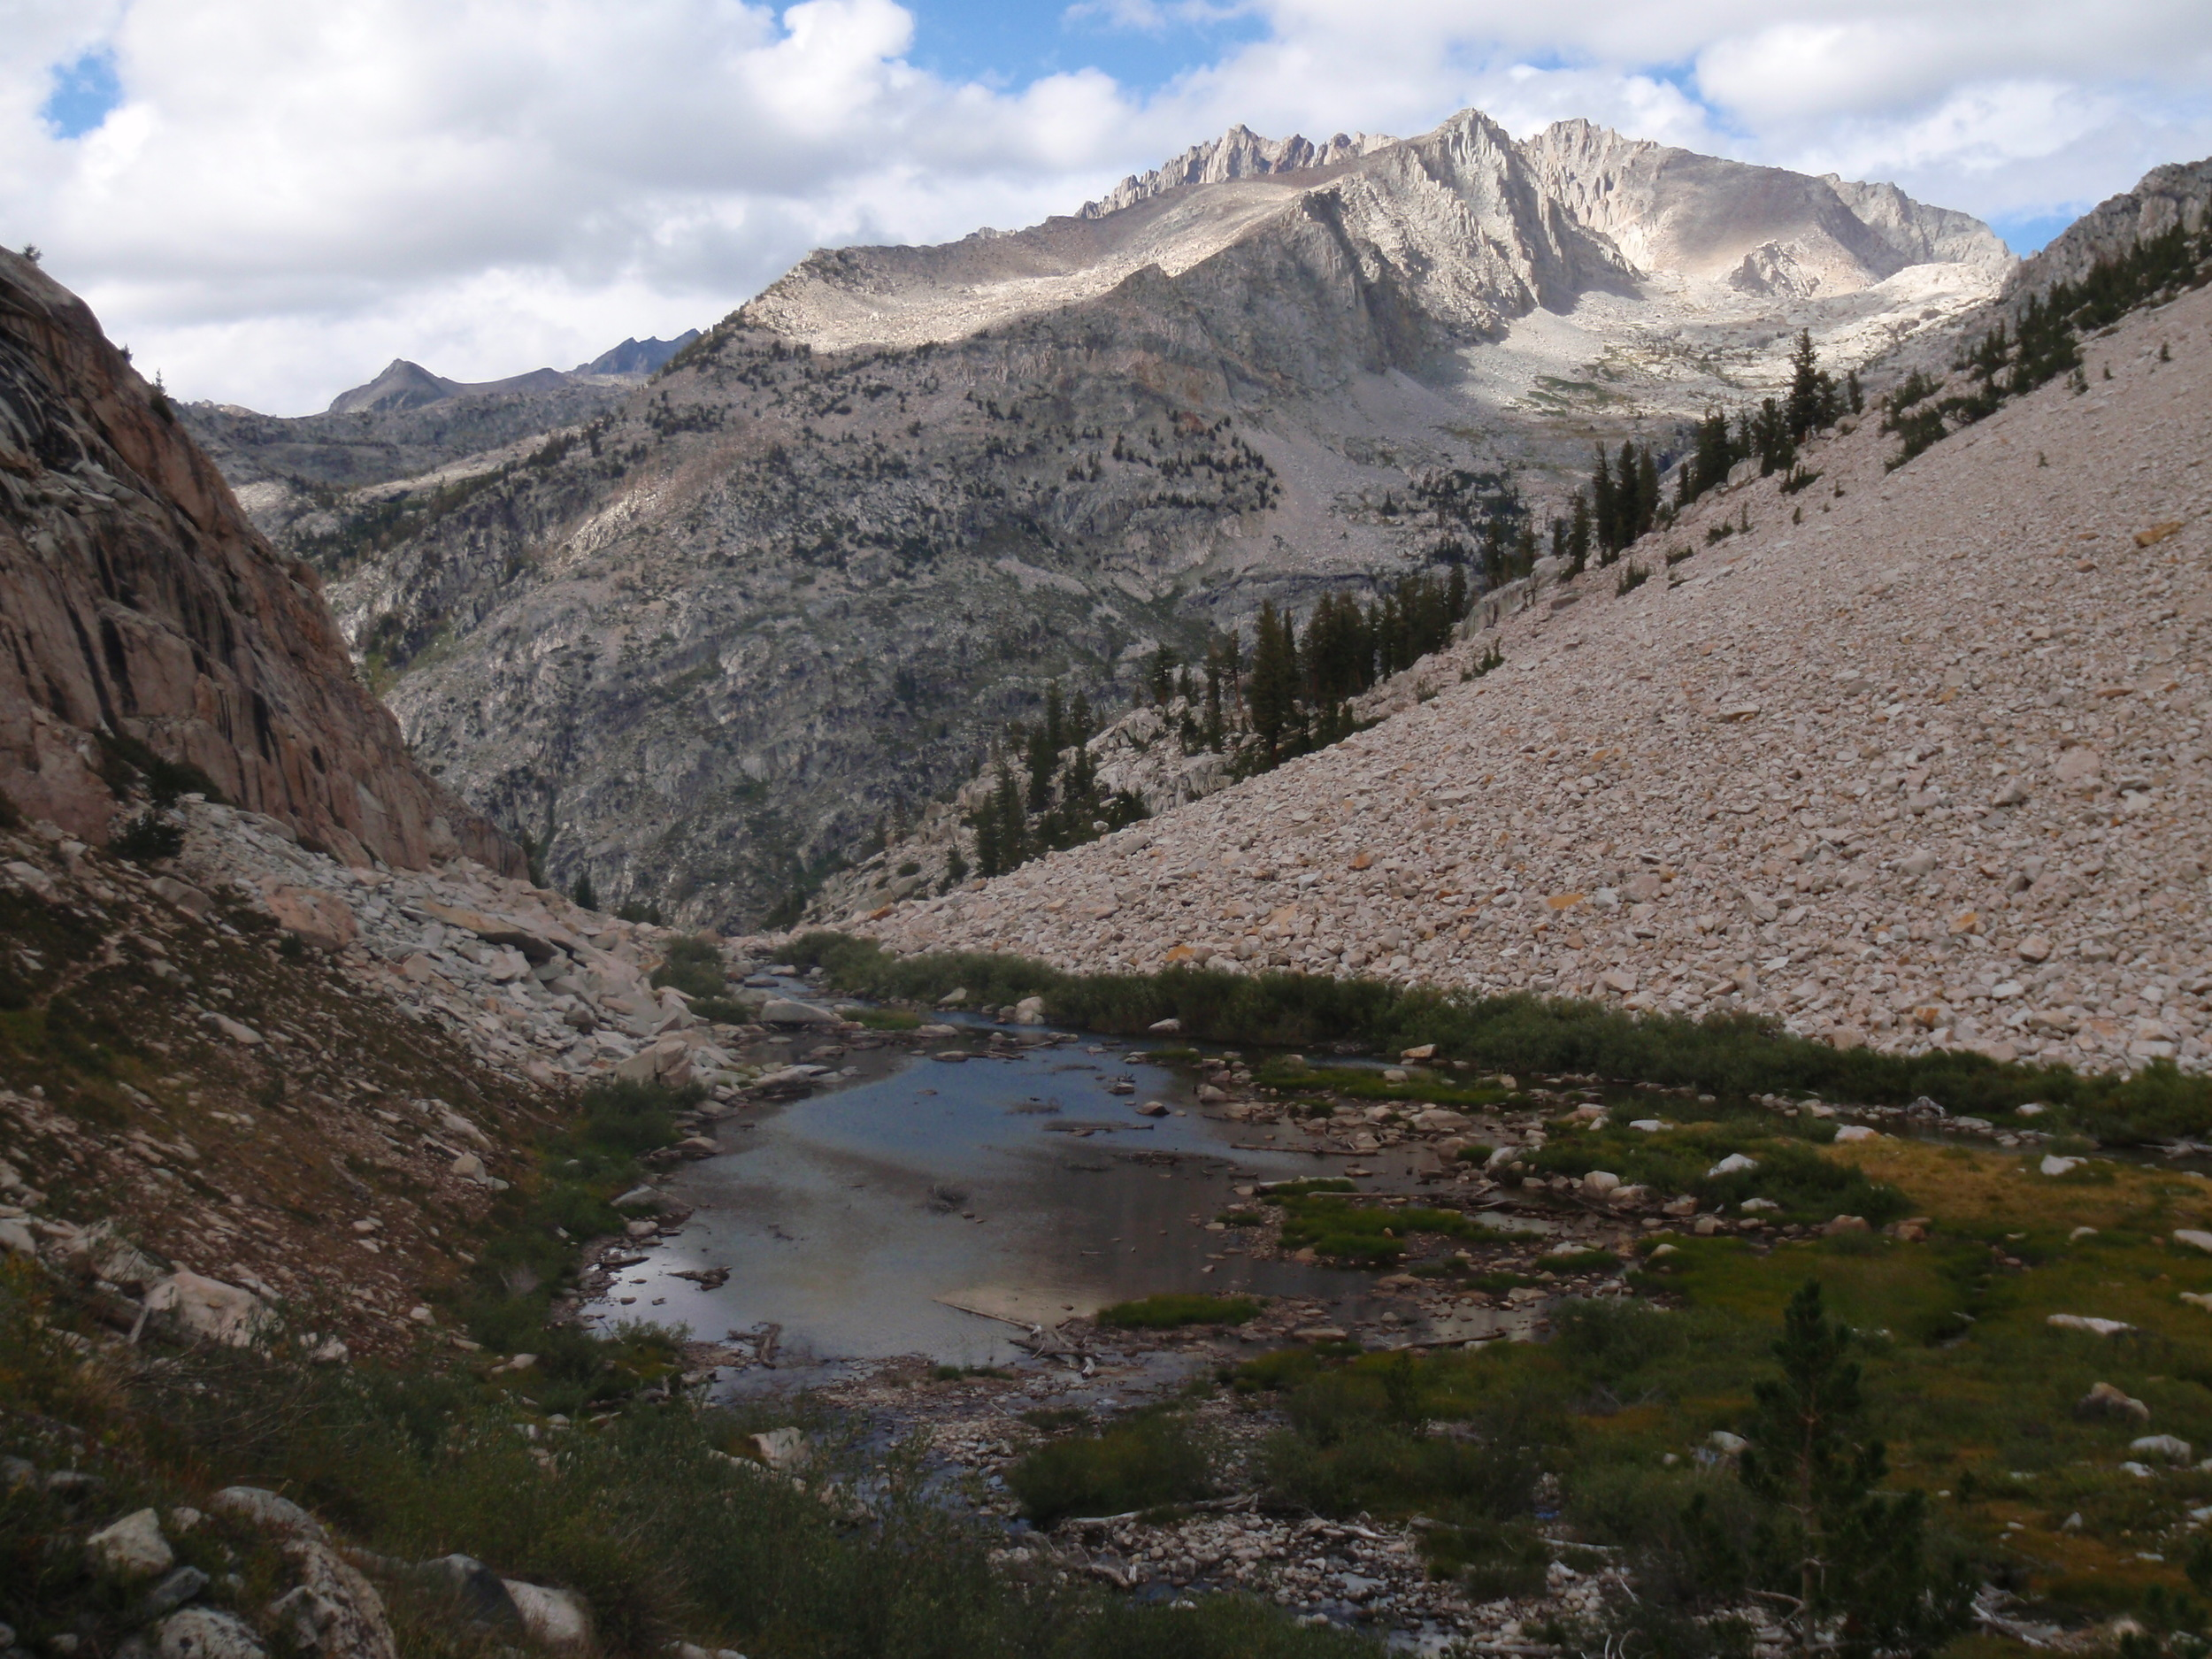 Palisades from upper Cataract Creek